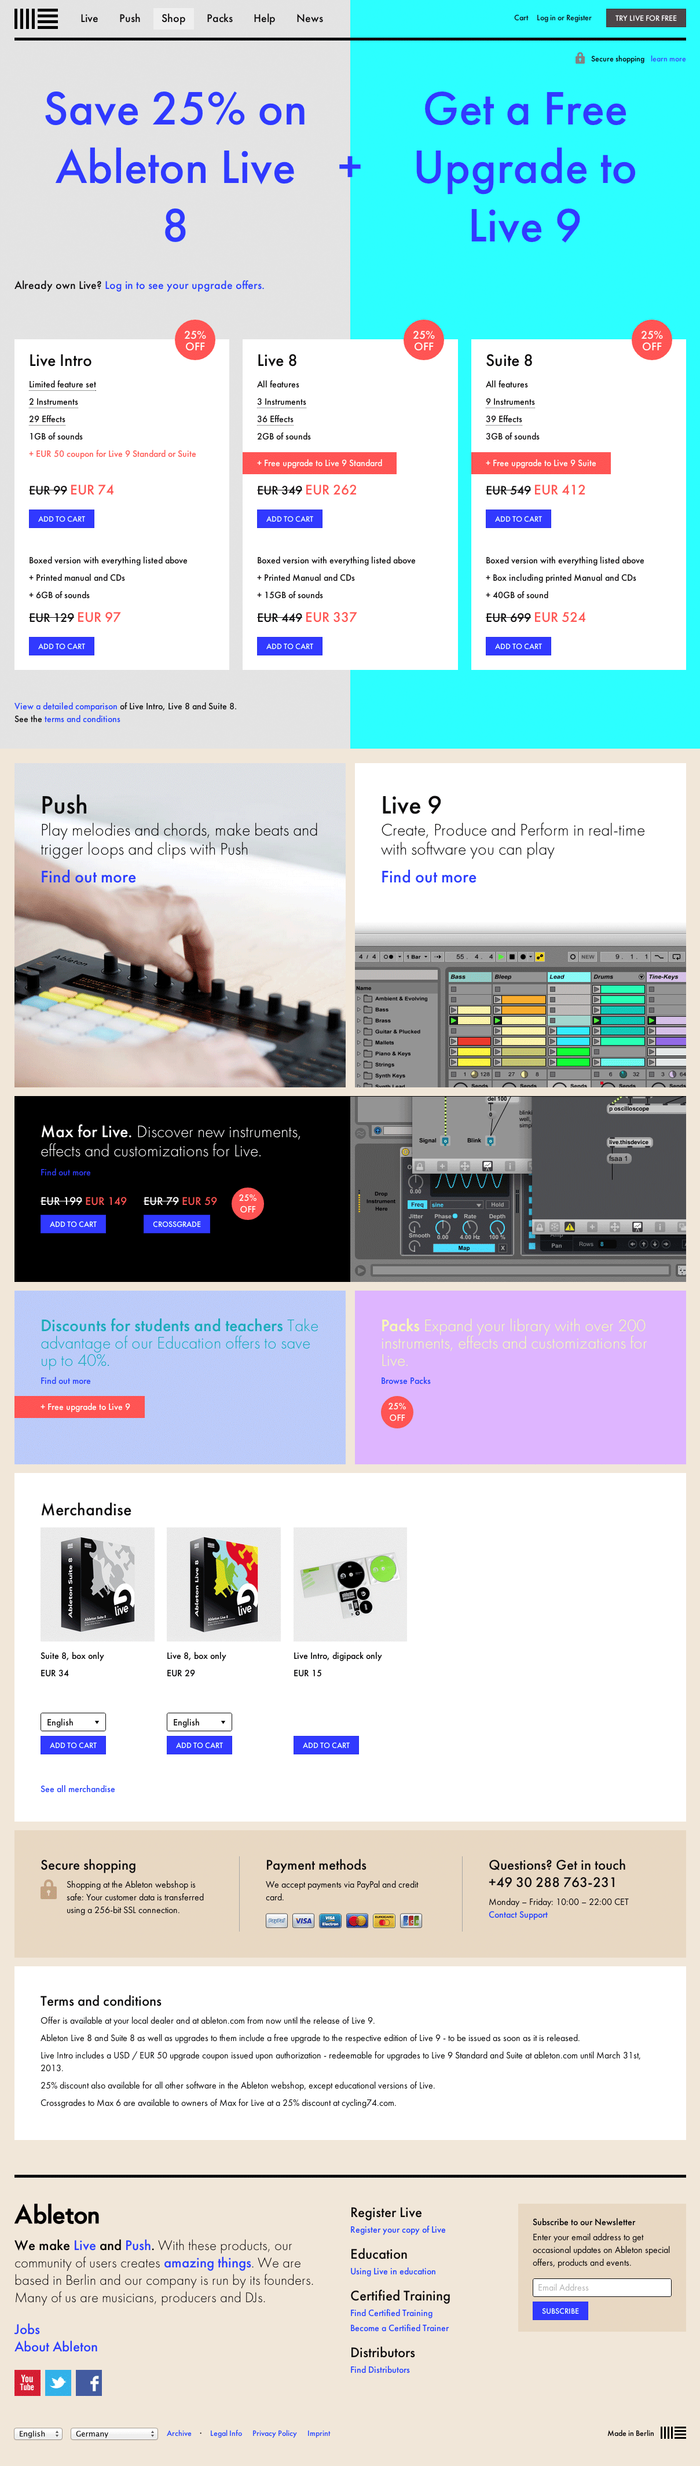 Ableton website 2